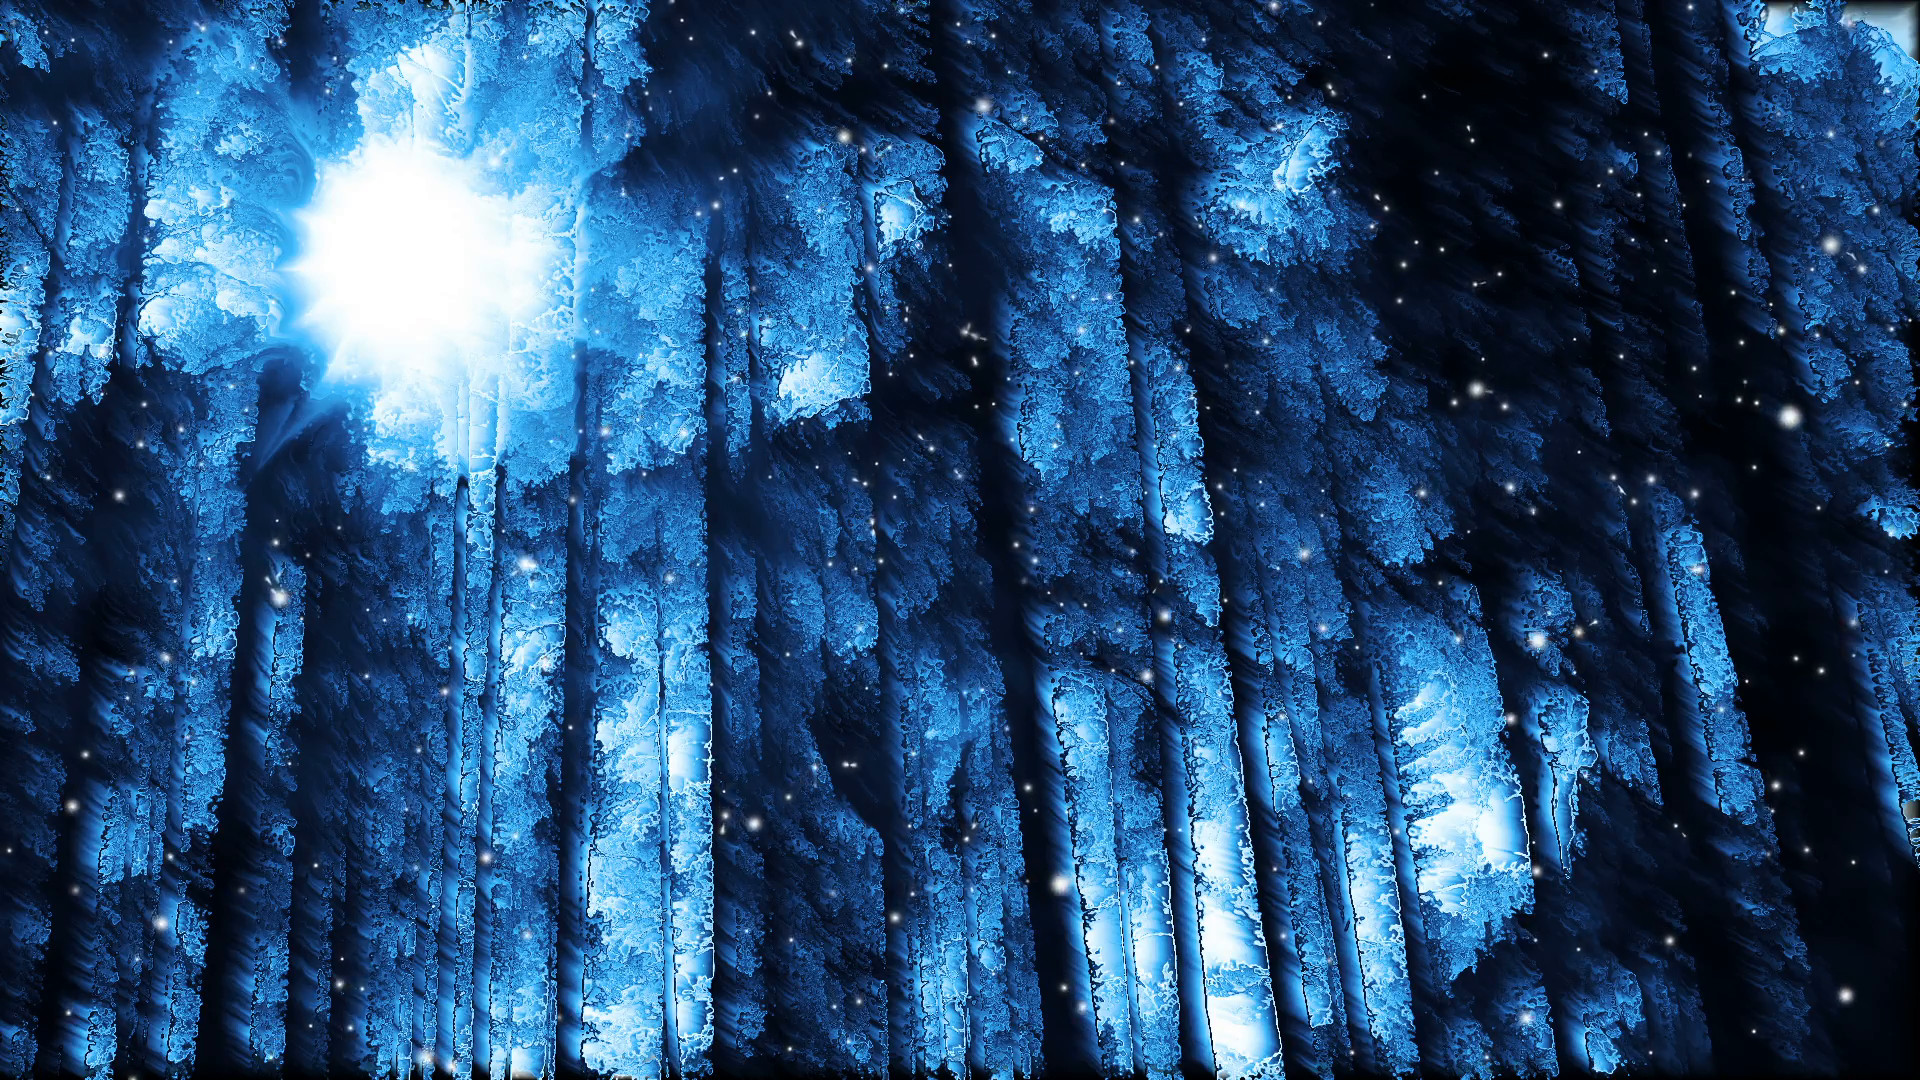 1920x1080 Abstract winter forest background and falling snow loop